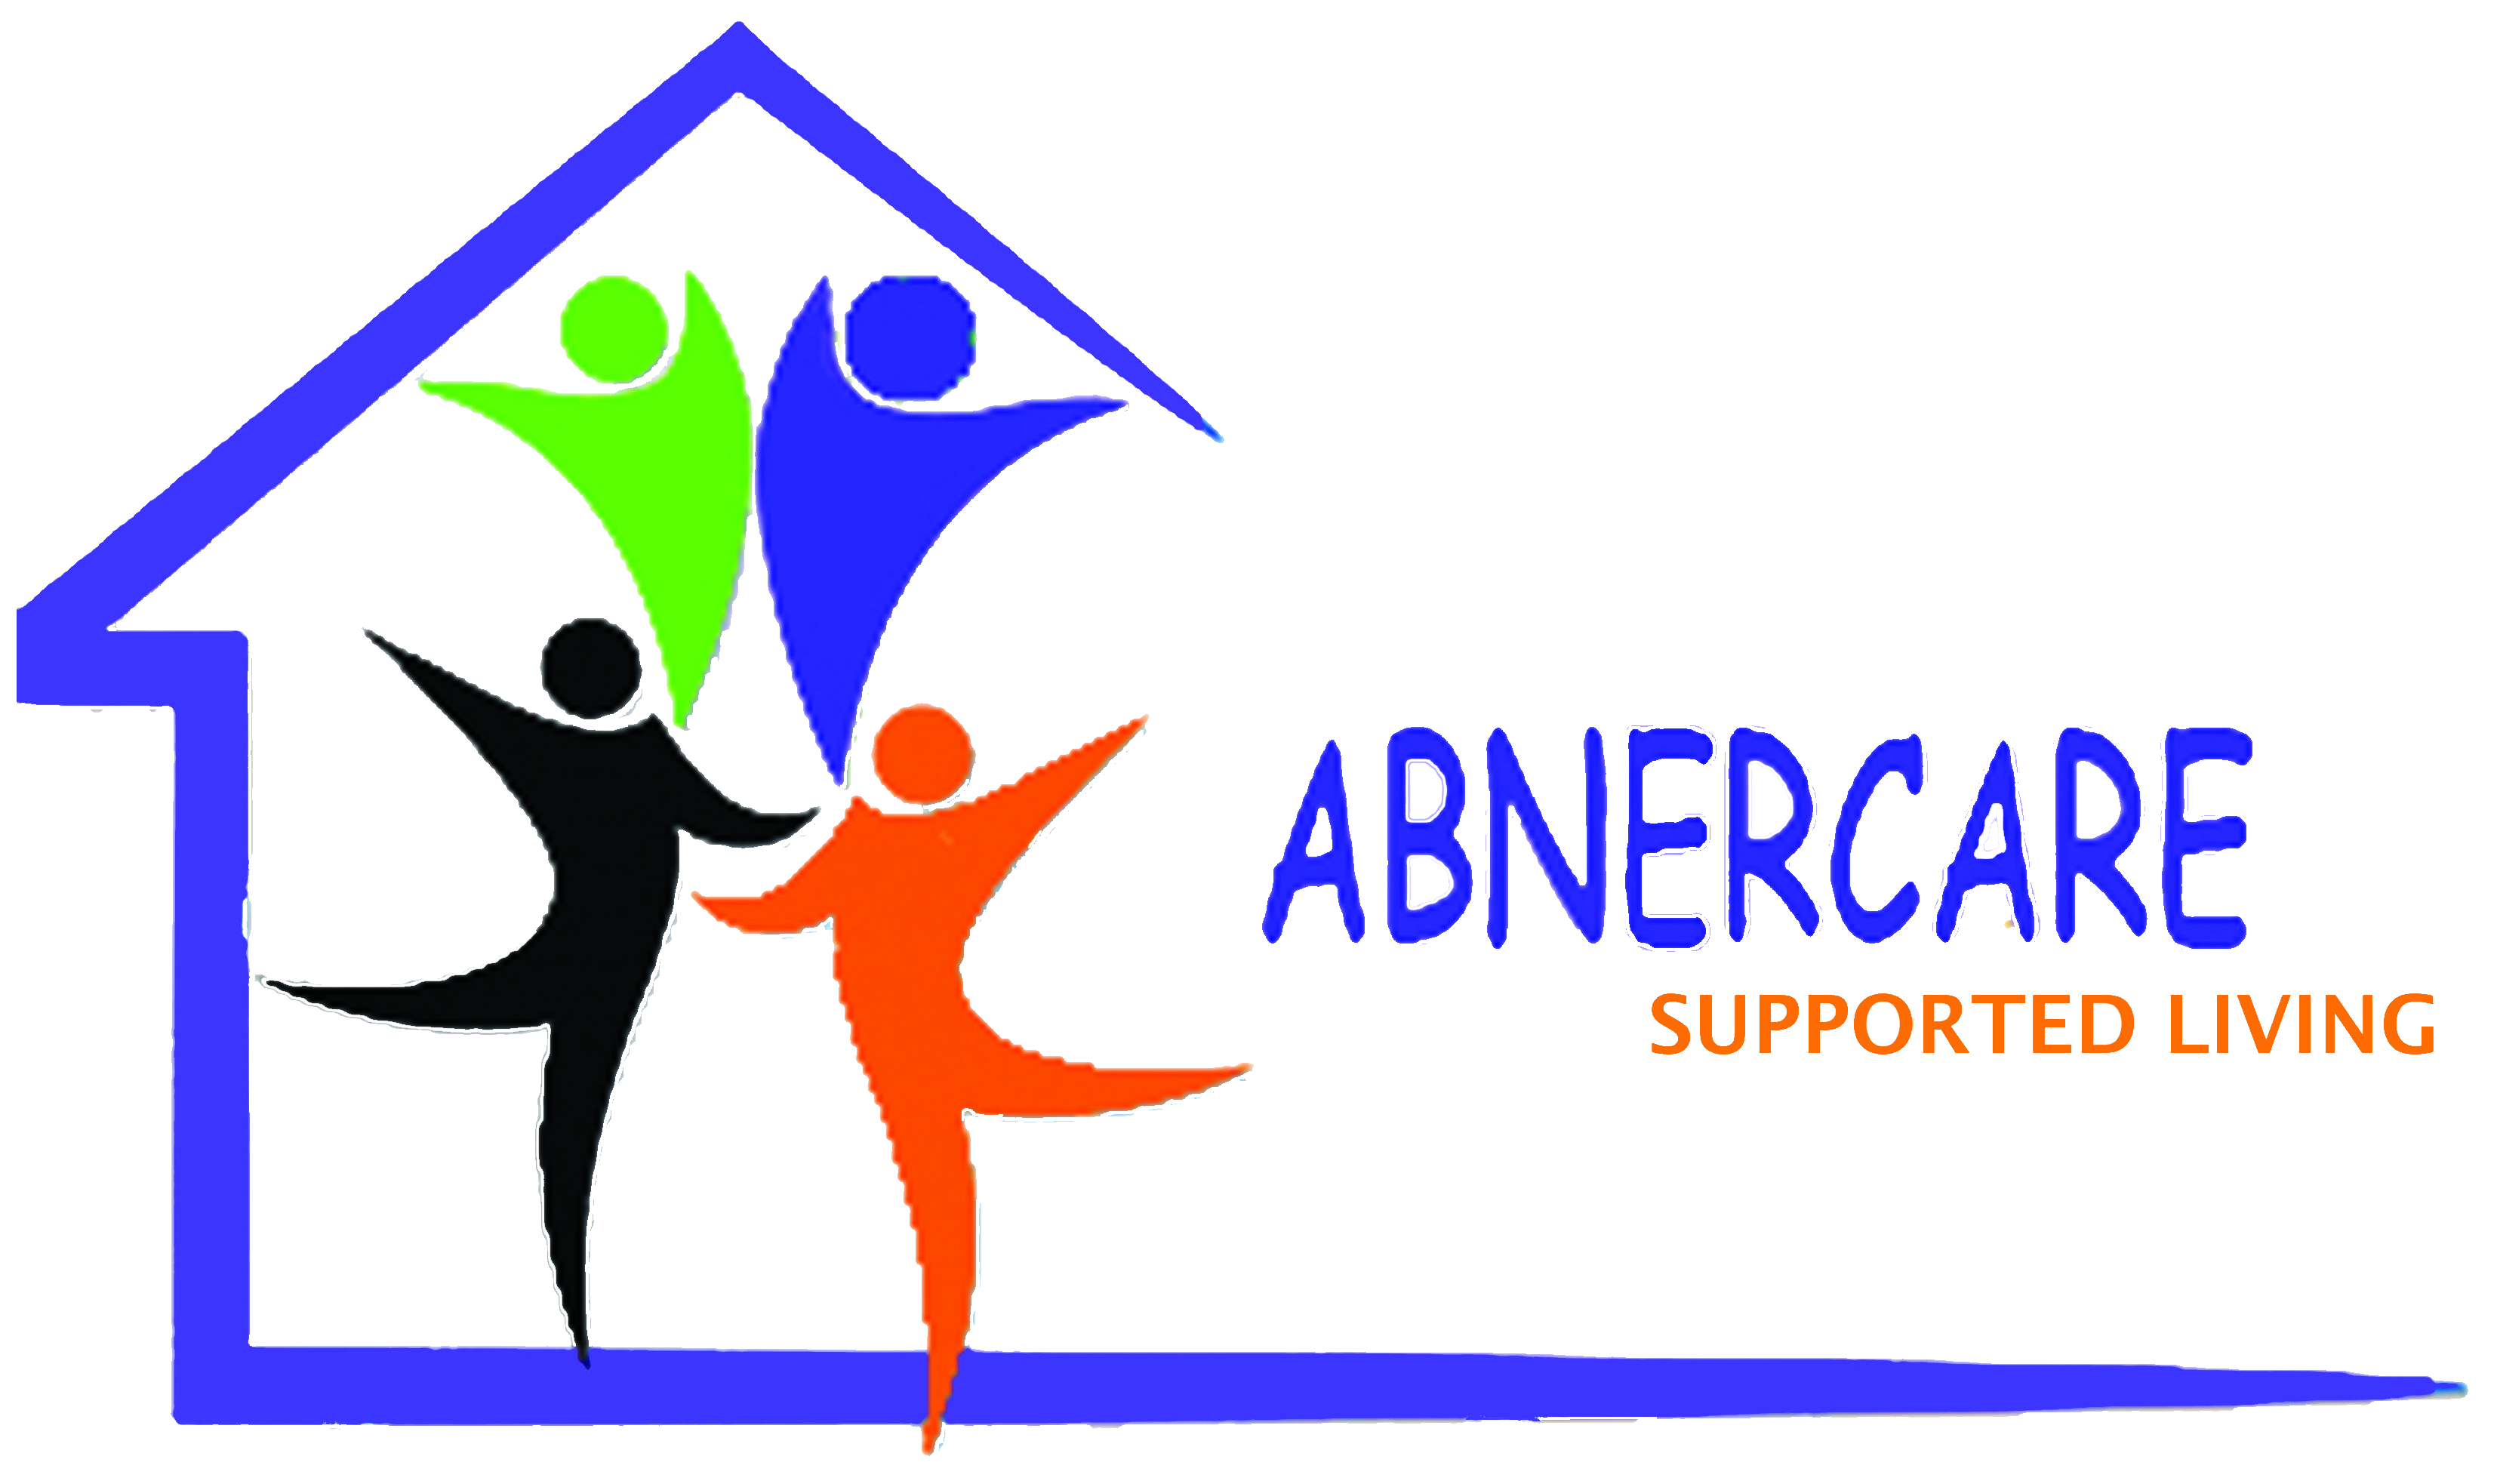 Supported living in Liverpool | Macclesfield | Abnercare